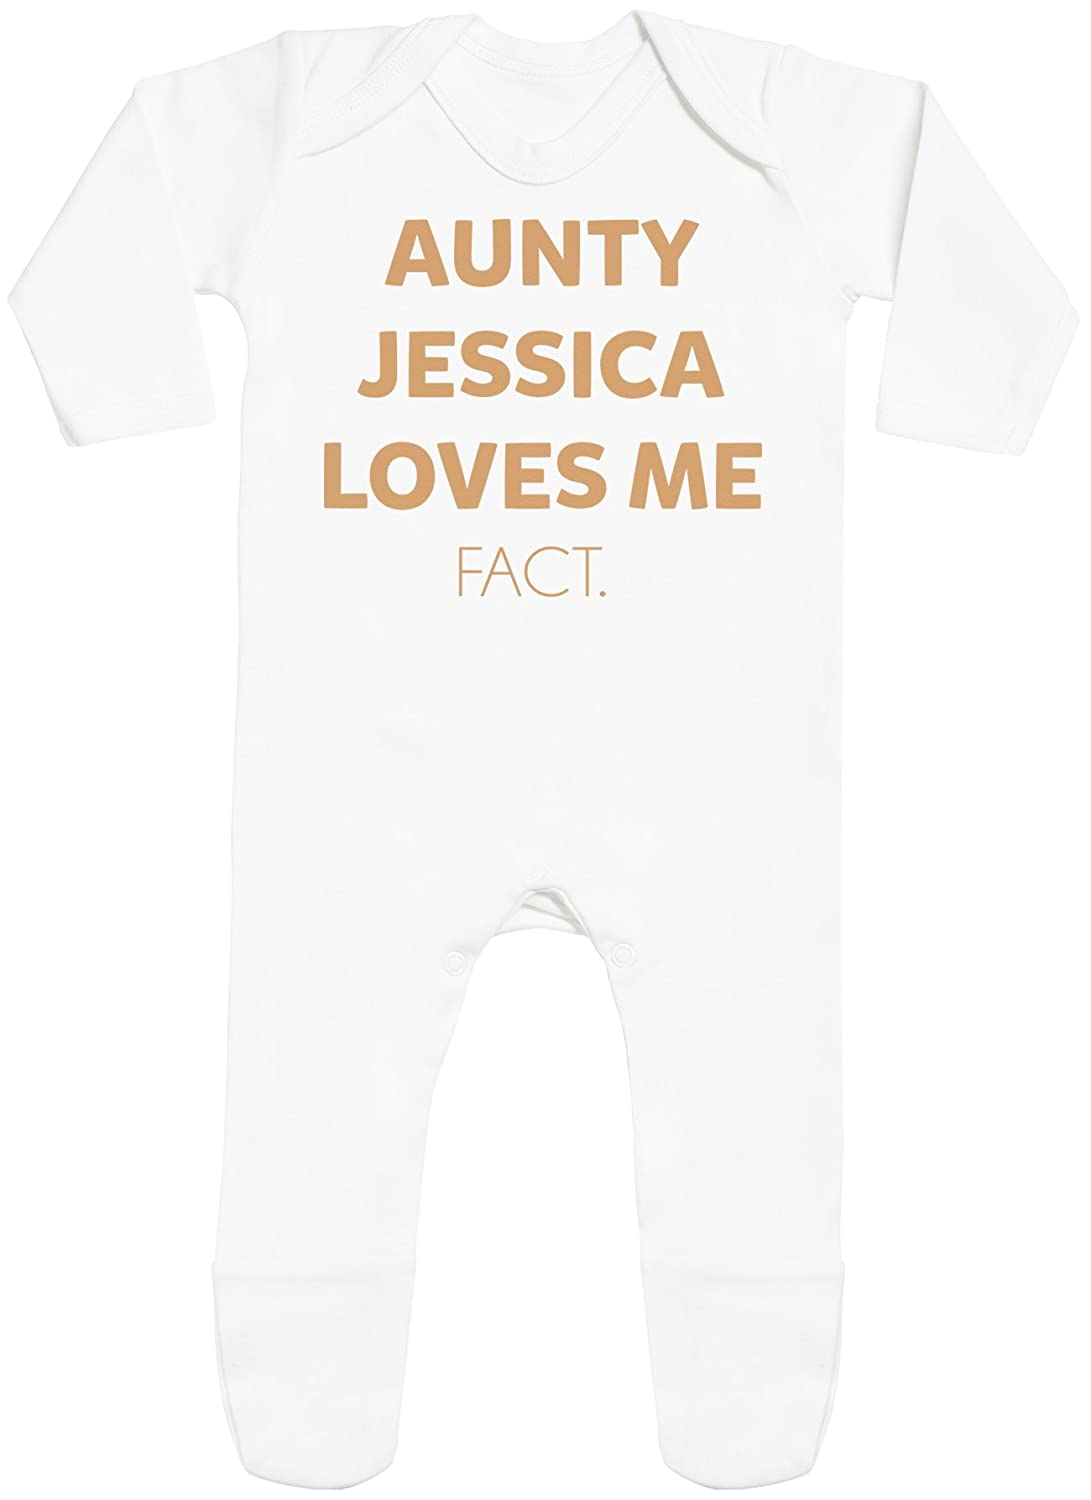 Spoilt Rotten Personalizados bebé Aunty Custom Loves Me Fact with Feet - Peleles Personalizados para bebé - Regalos Personalizados para bebé: Amazon.es: ...